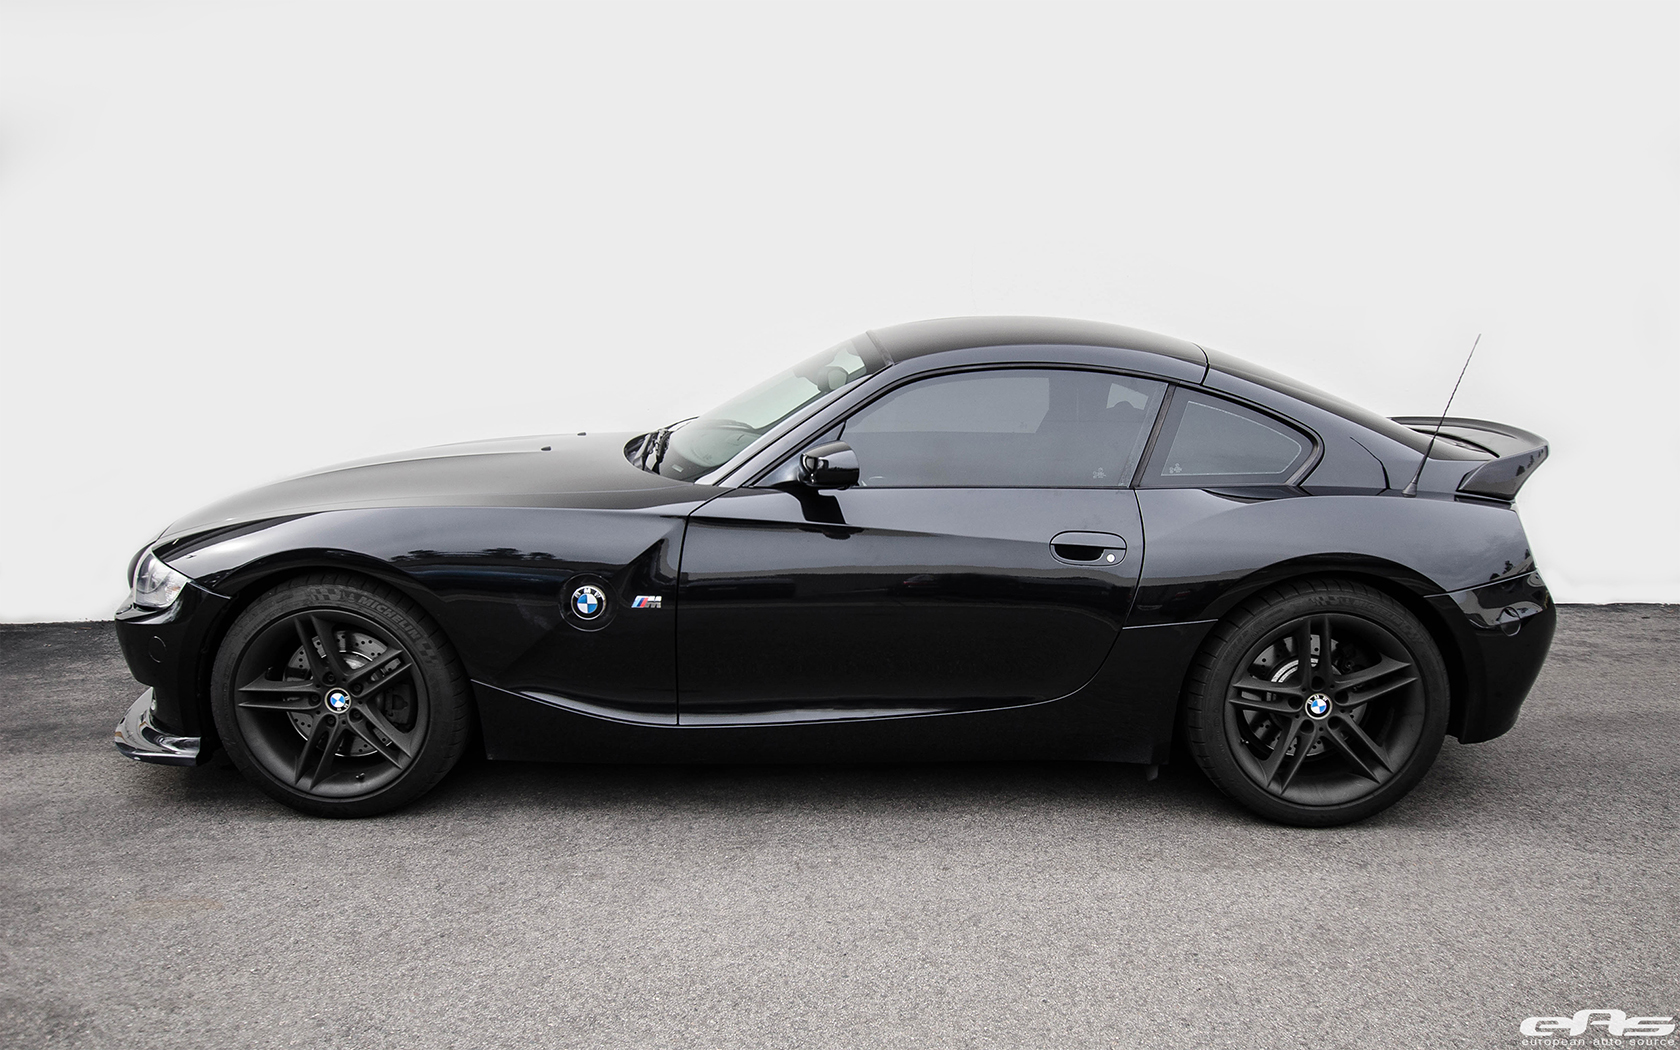 Eas Updates Bmw Z4 M Roadster With The Arkym Carbon Fiber Aero Kit Bmw Car Tuning